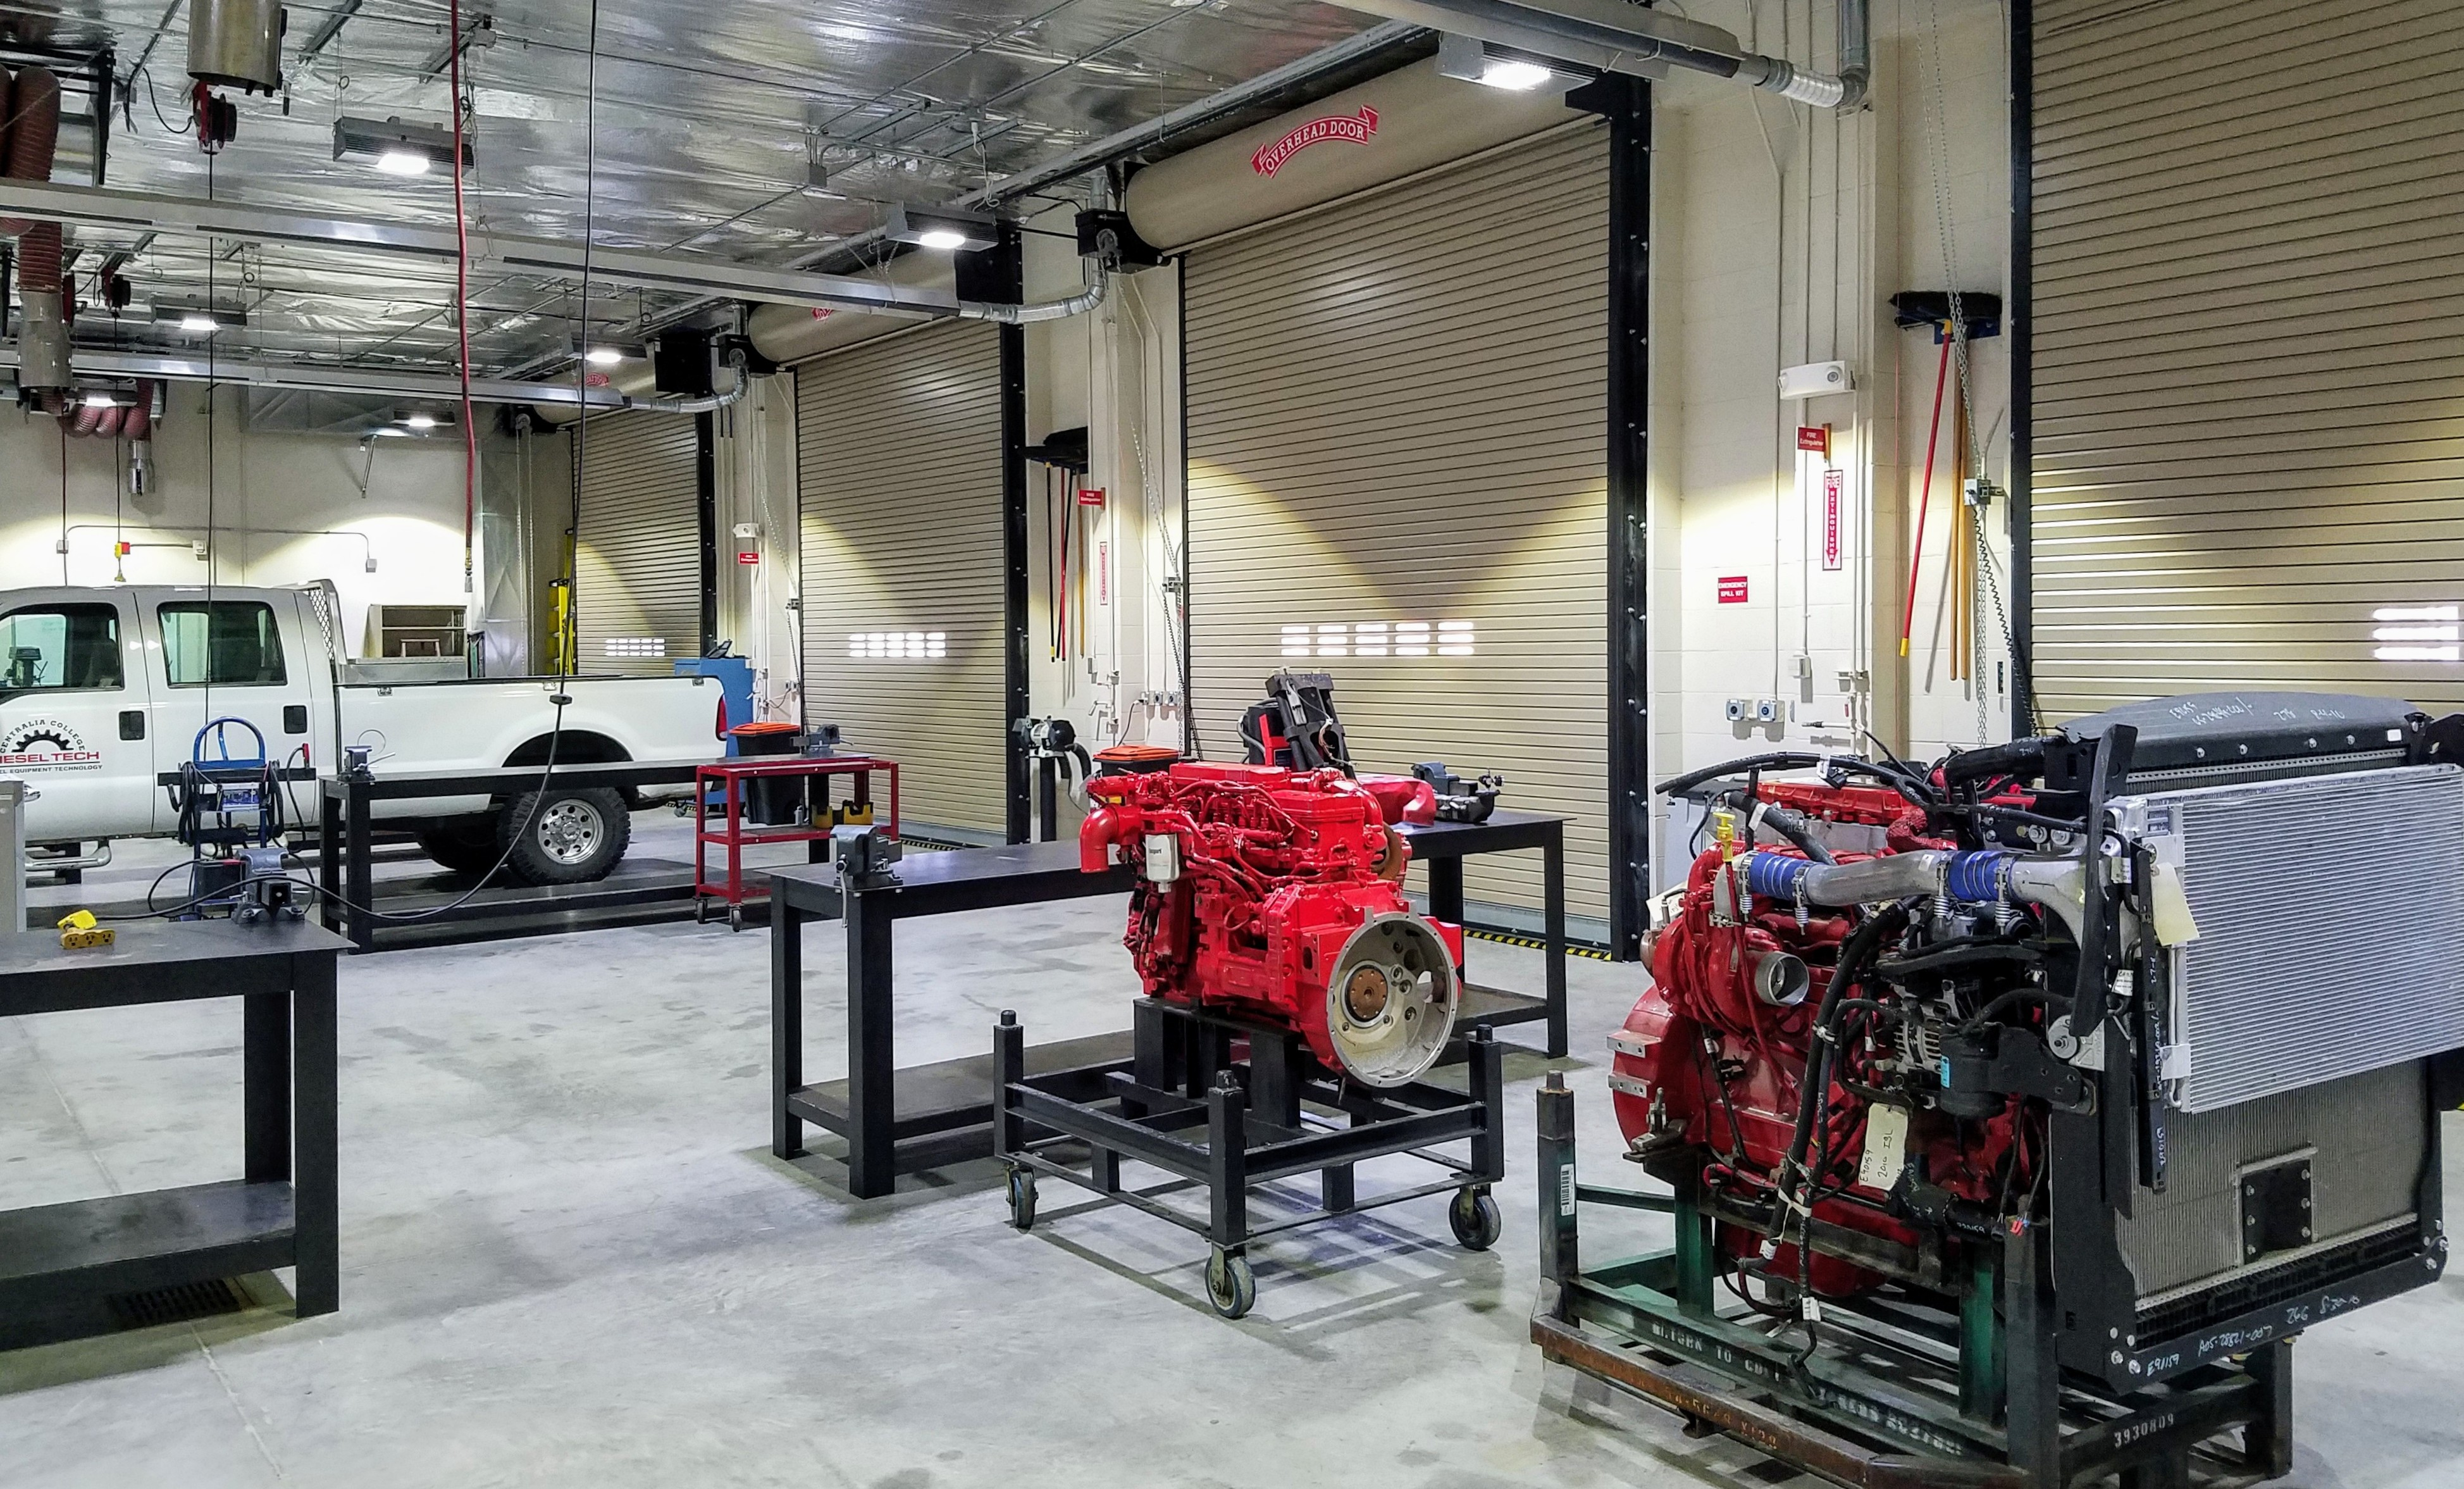 More than turning wrenches: Centralia College's applied bachelor's program prepares the next generation of diesel professionals